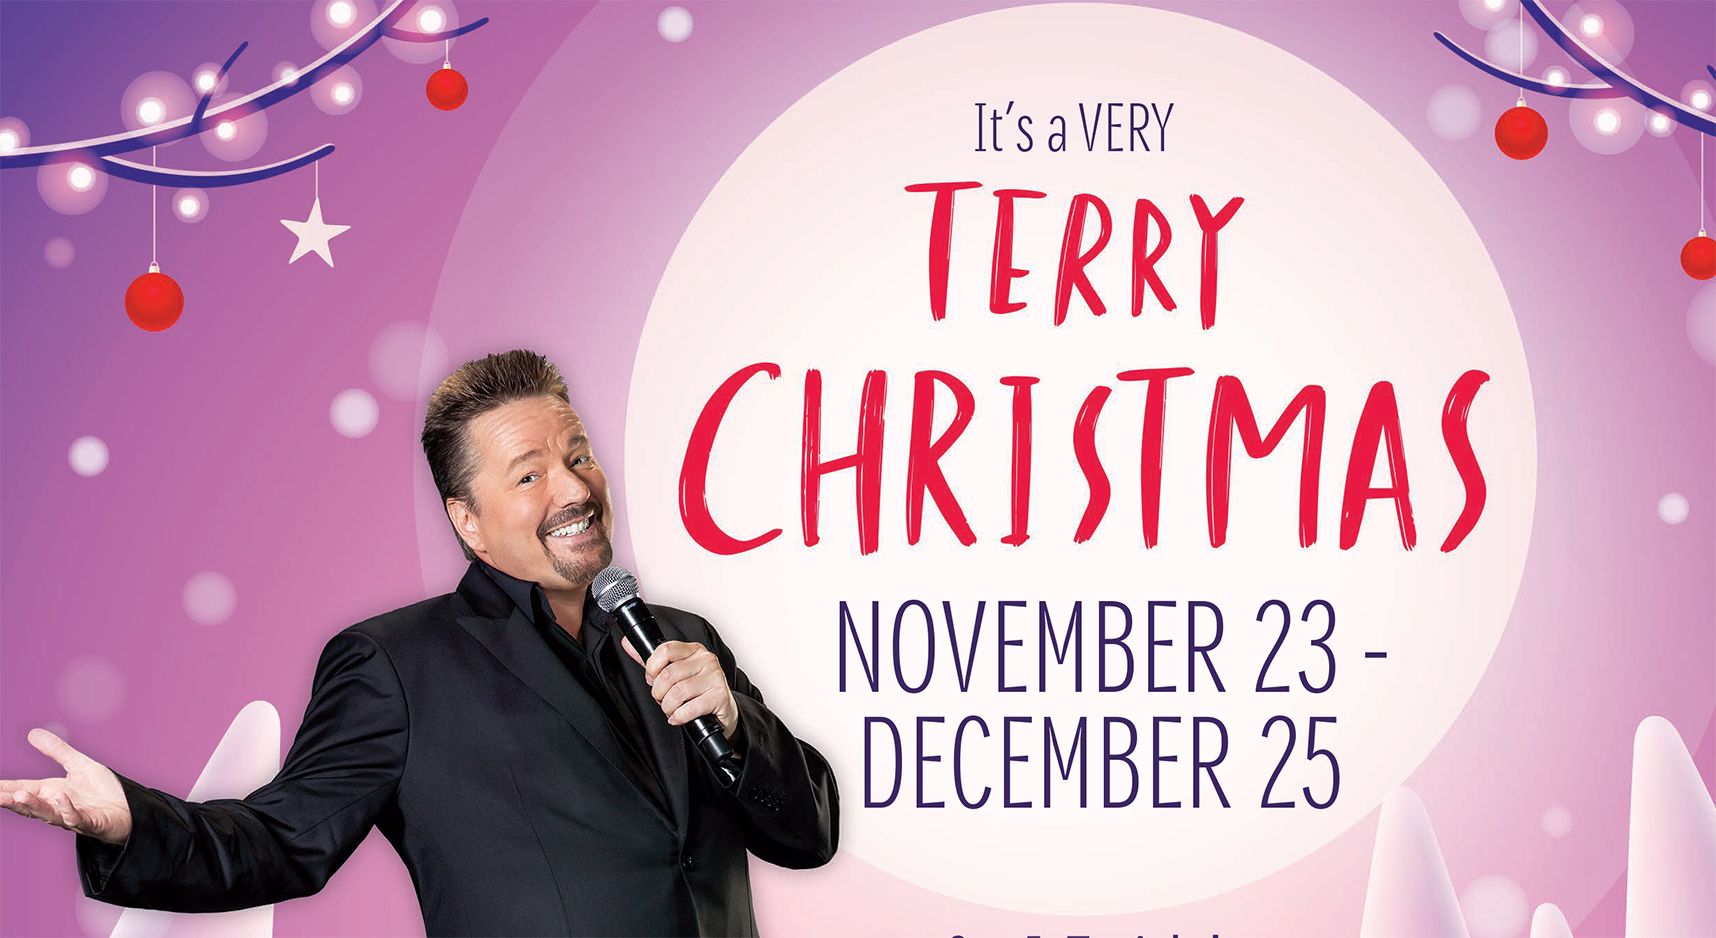 Very Terry Christmas Show